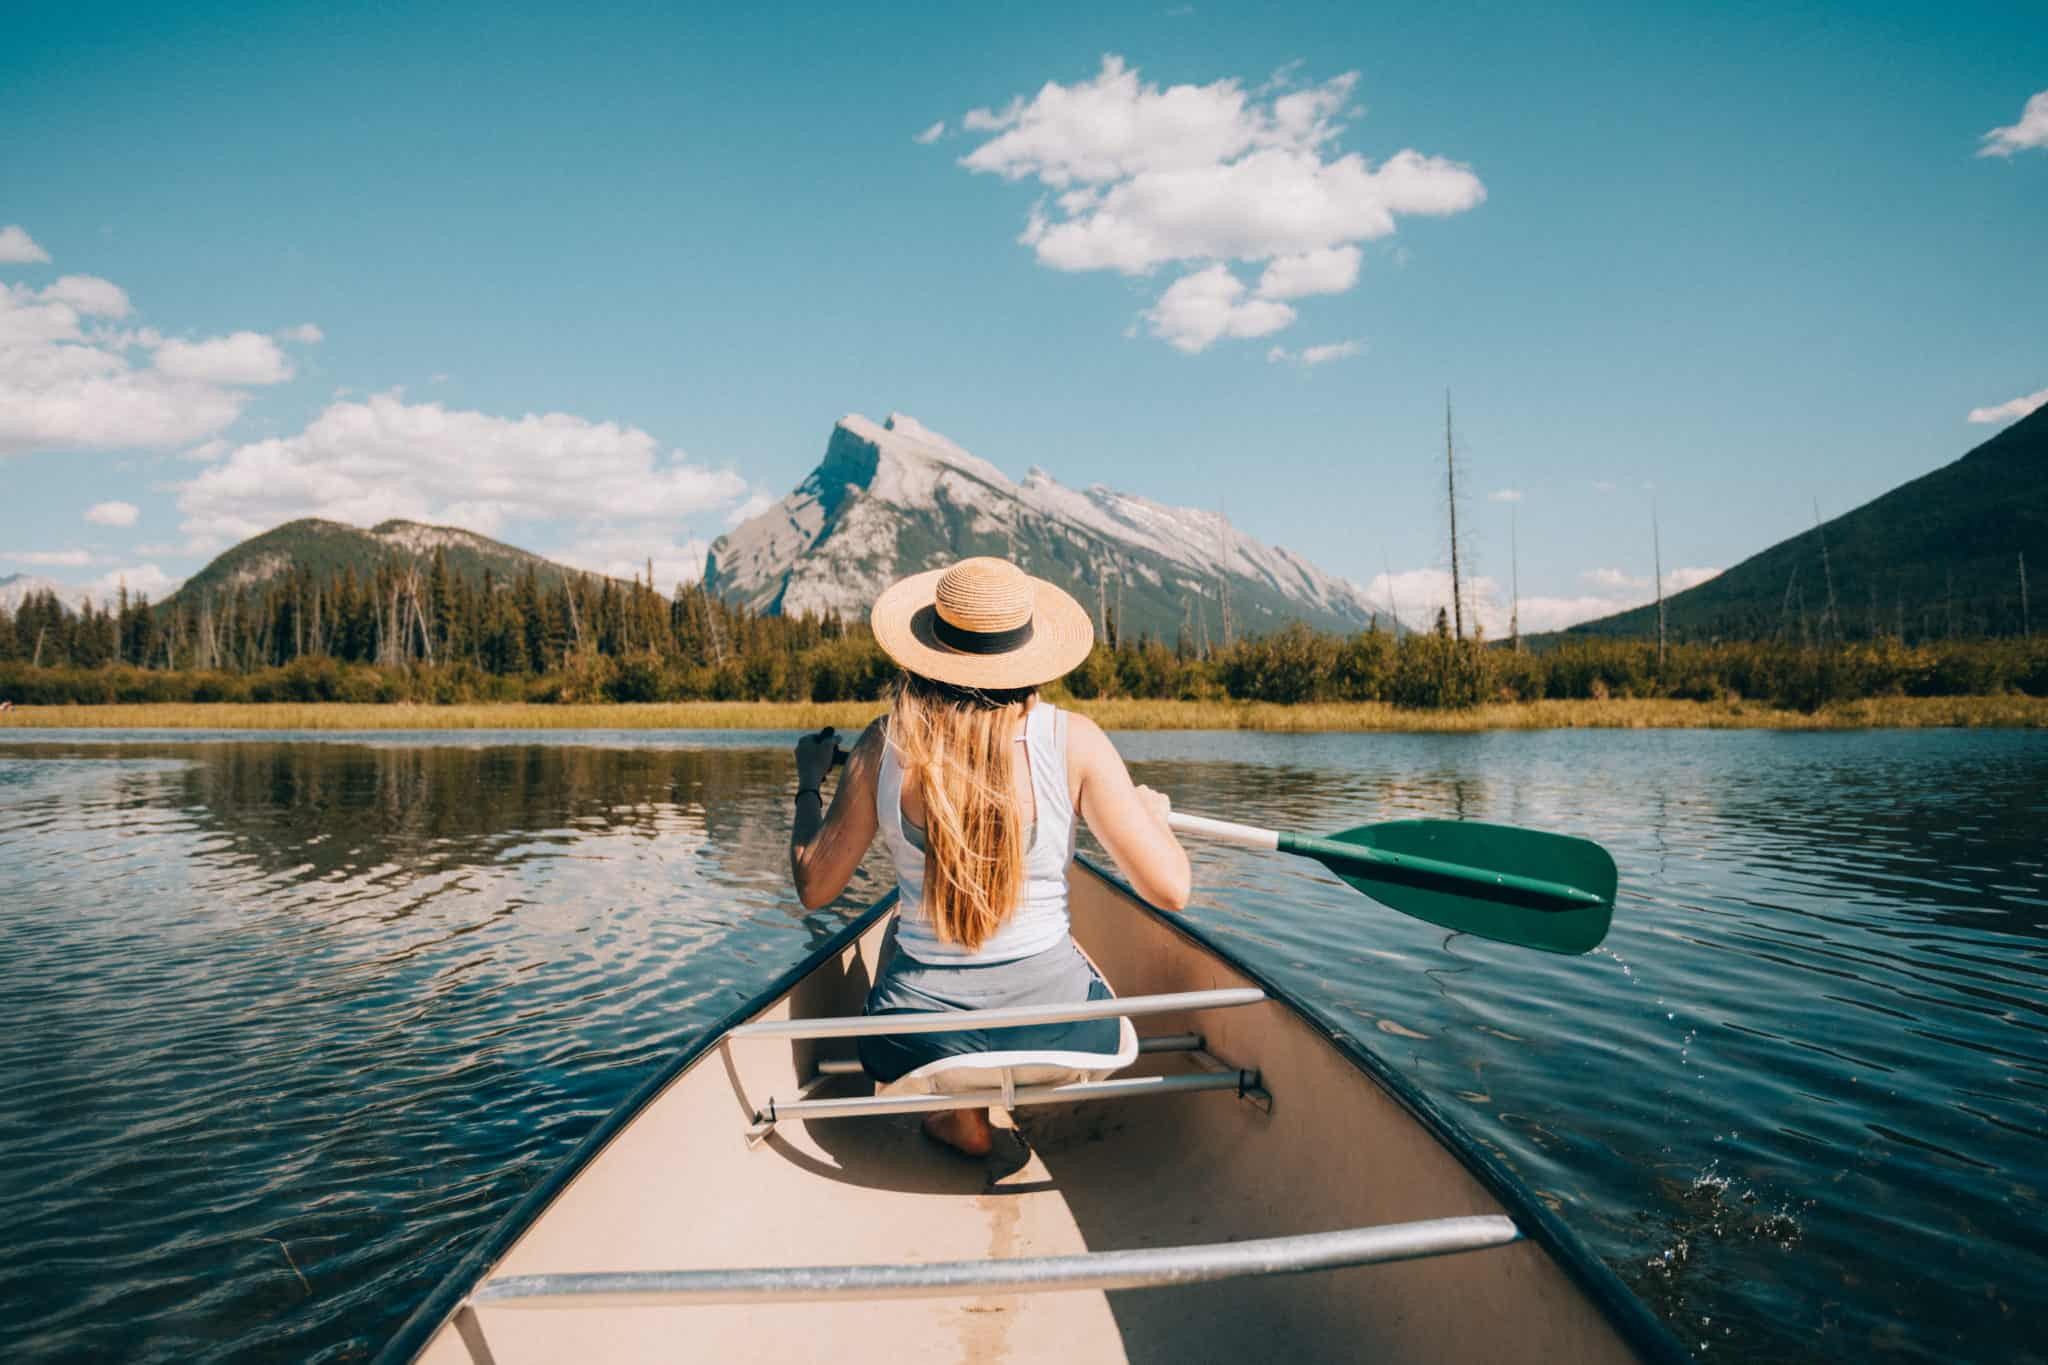 Things To Do In Banff - Canoe Vermillion Lakes